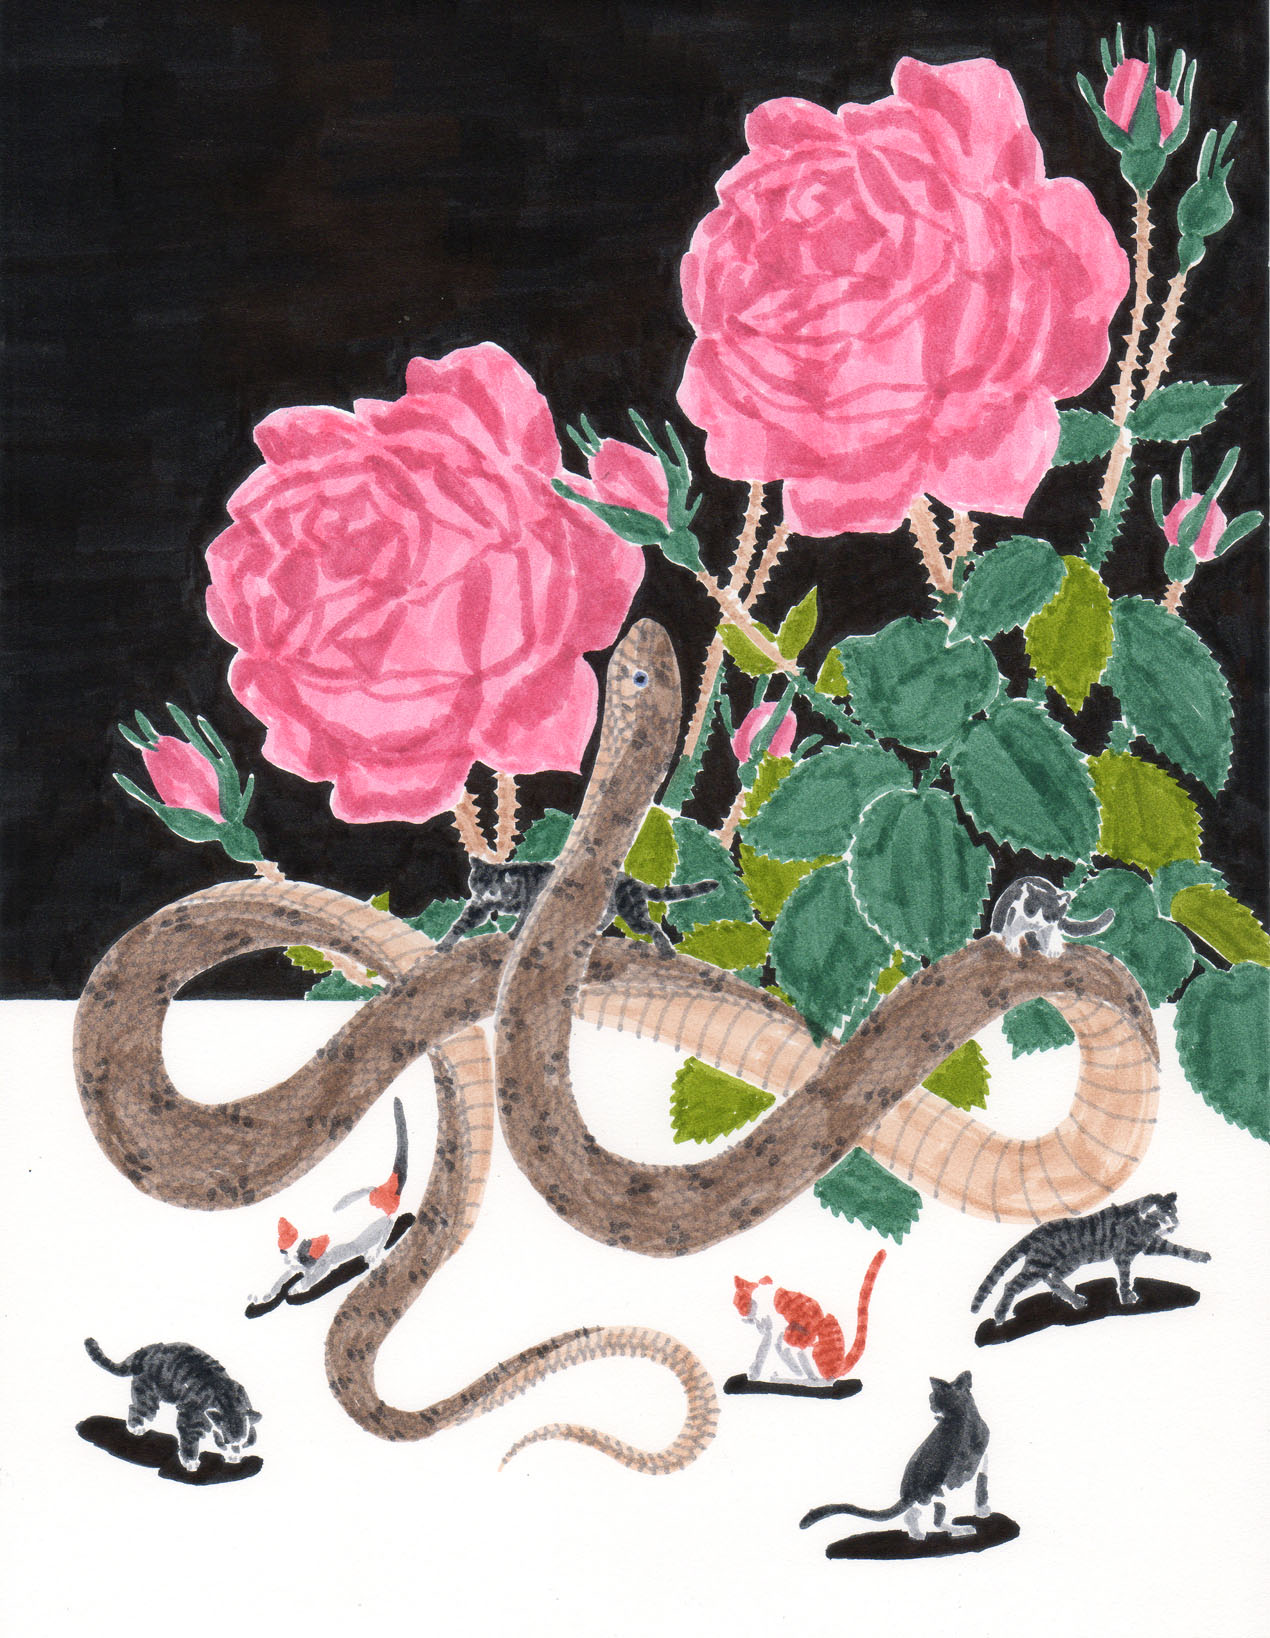 Grant Huang.  Snake, Roses, Seven Cats. Marker on paper. 12 inches x 14 inches framed. 2013.